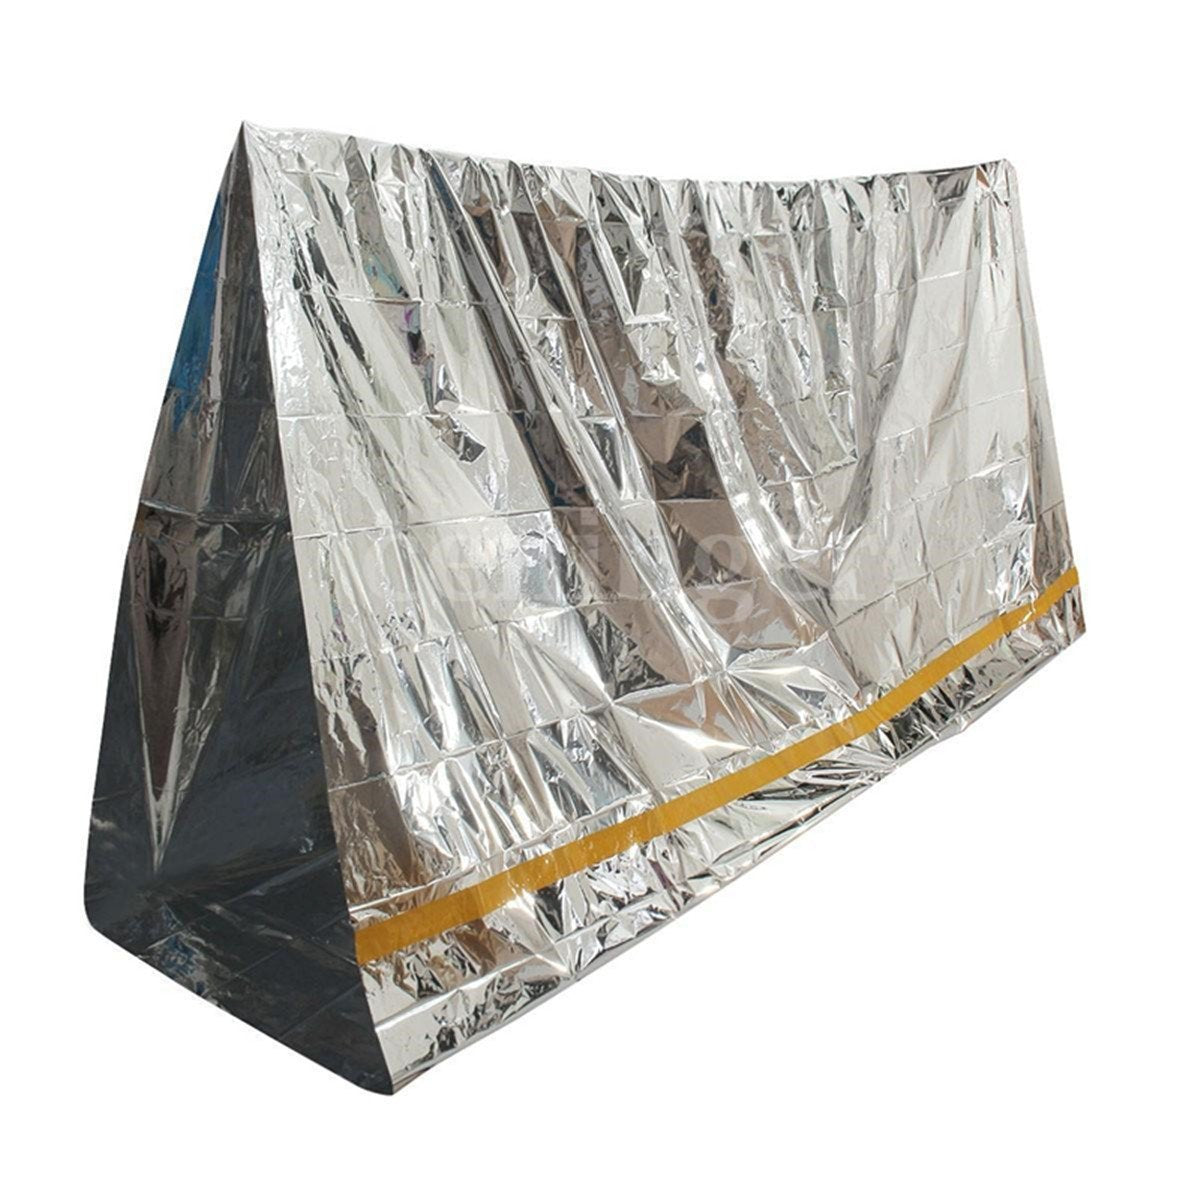 Emergency Survival Tent